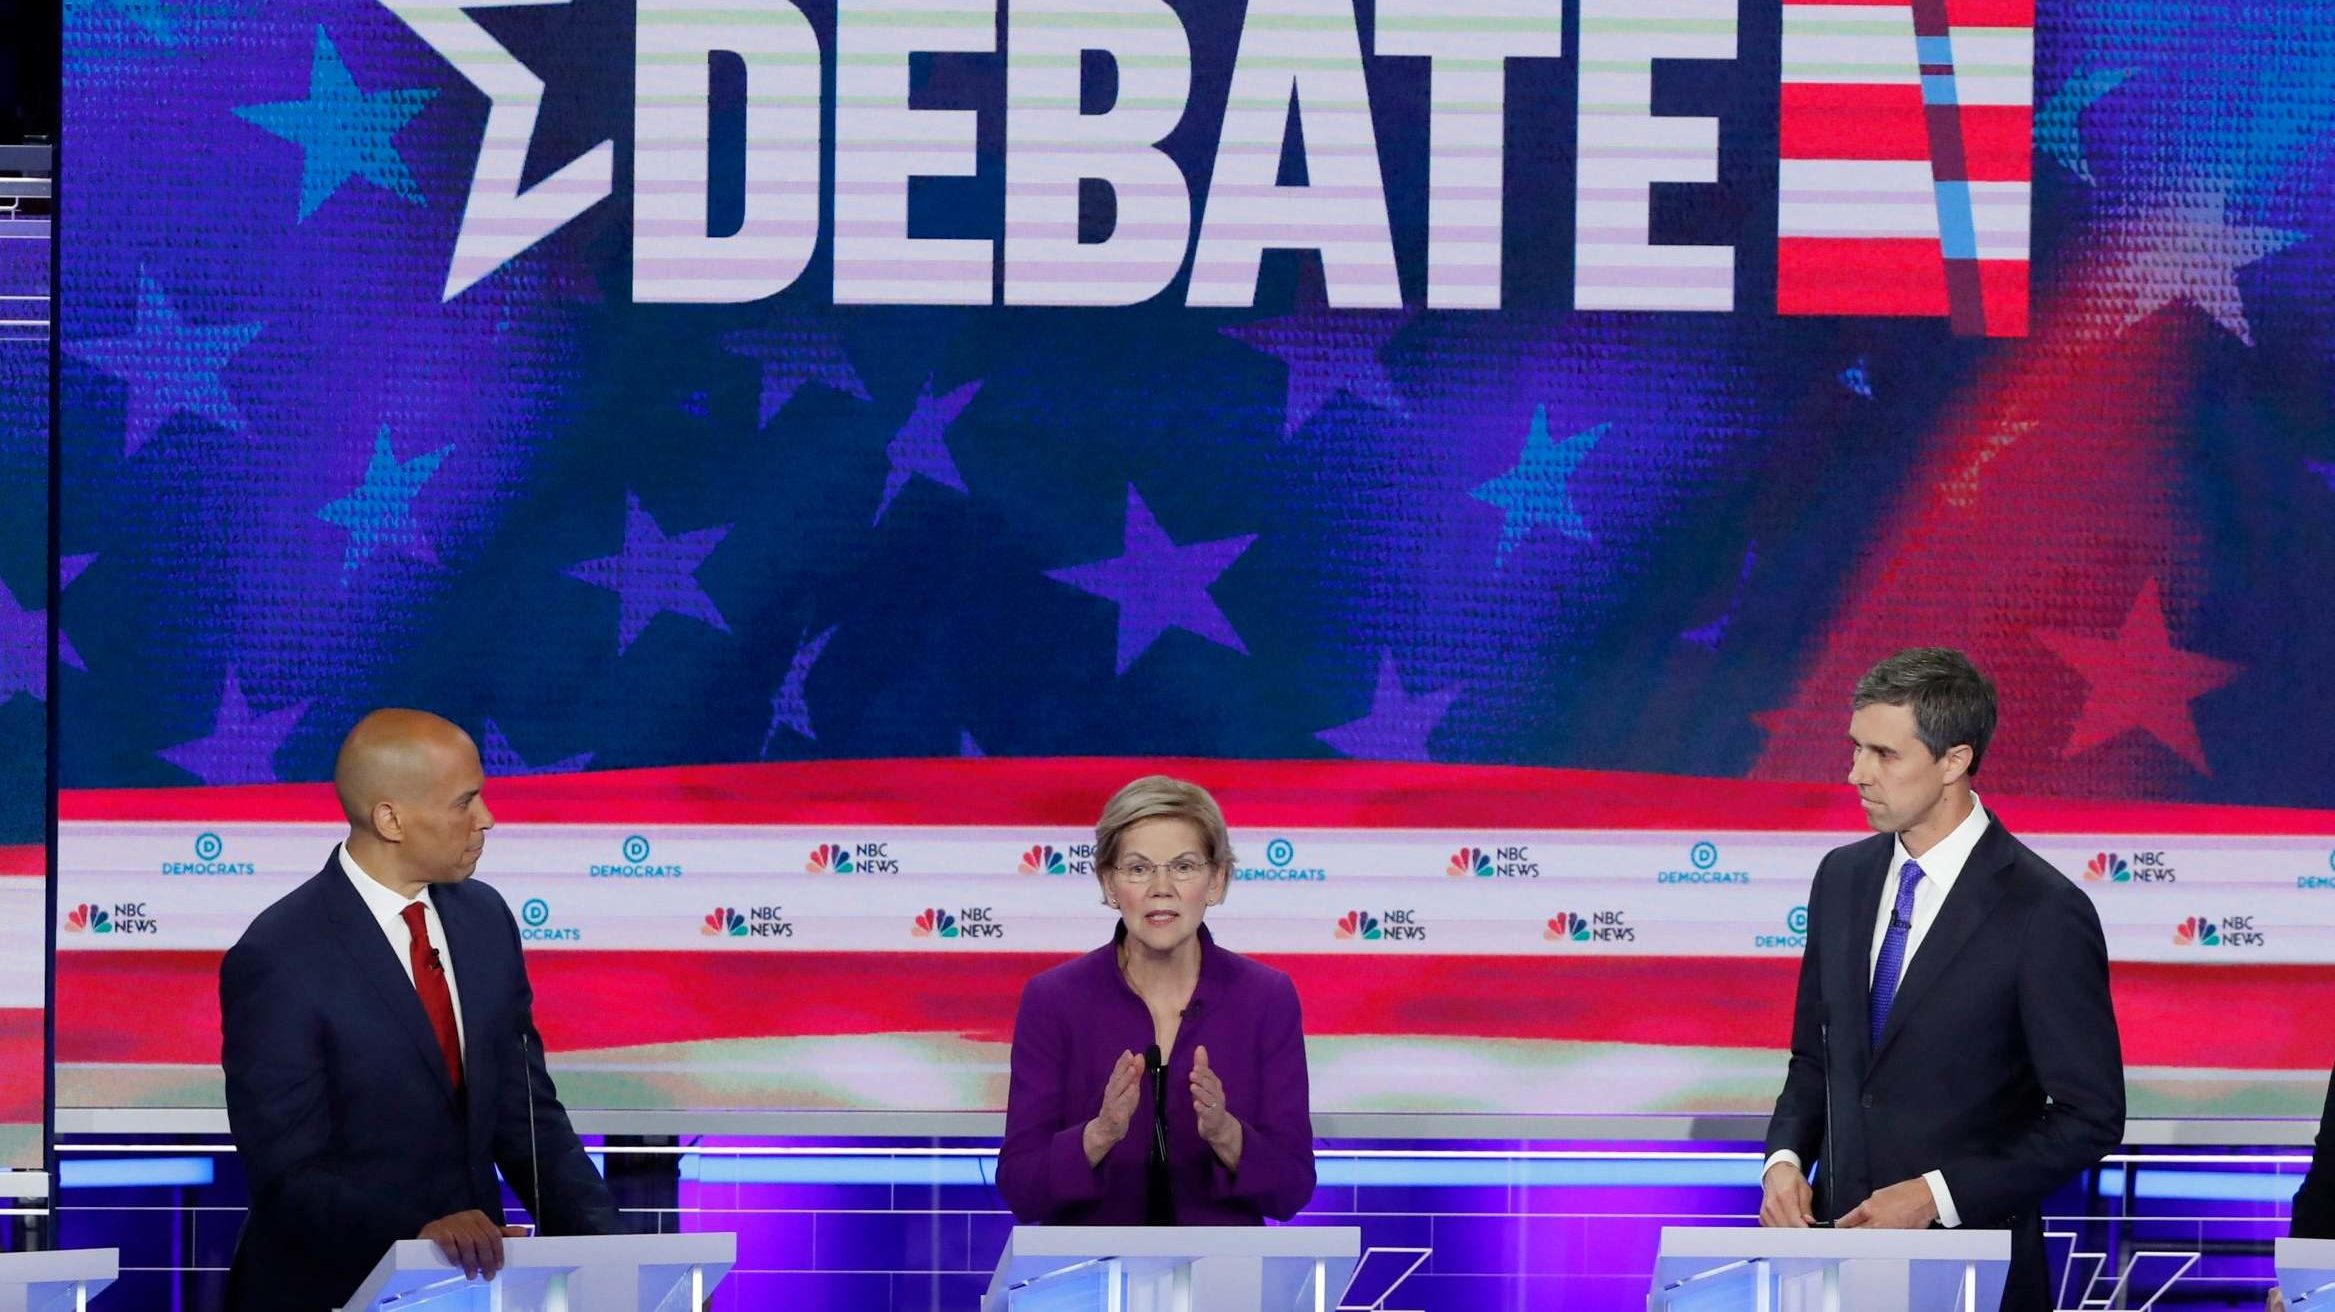 US Democratic Debate 2019 live stream